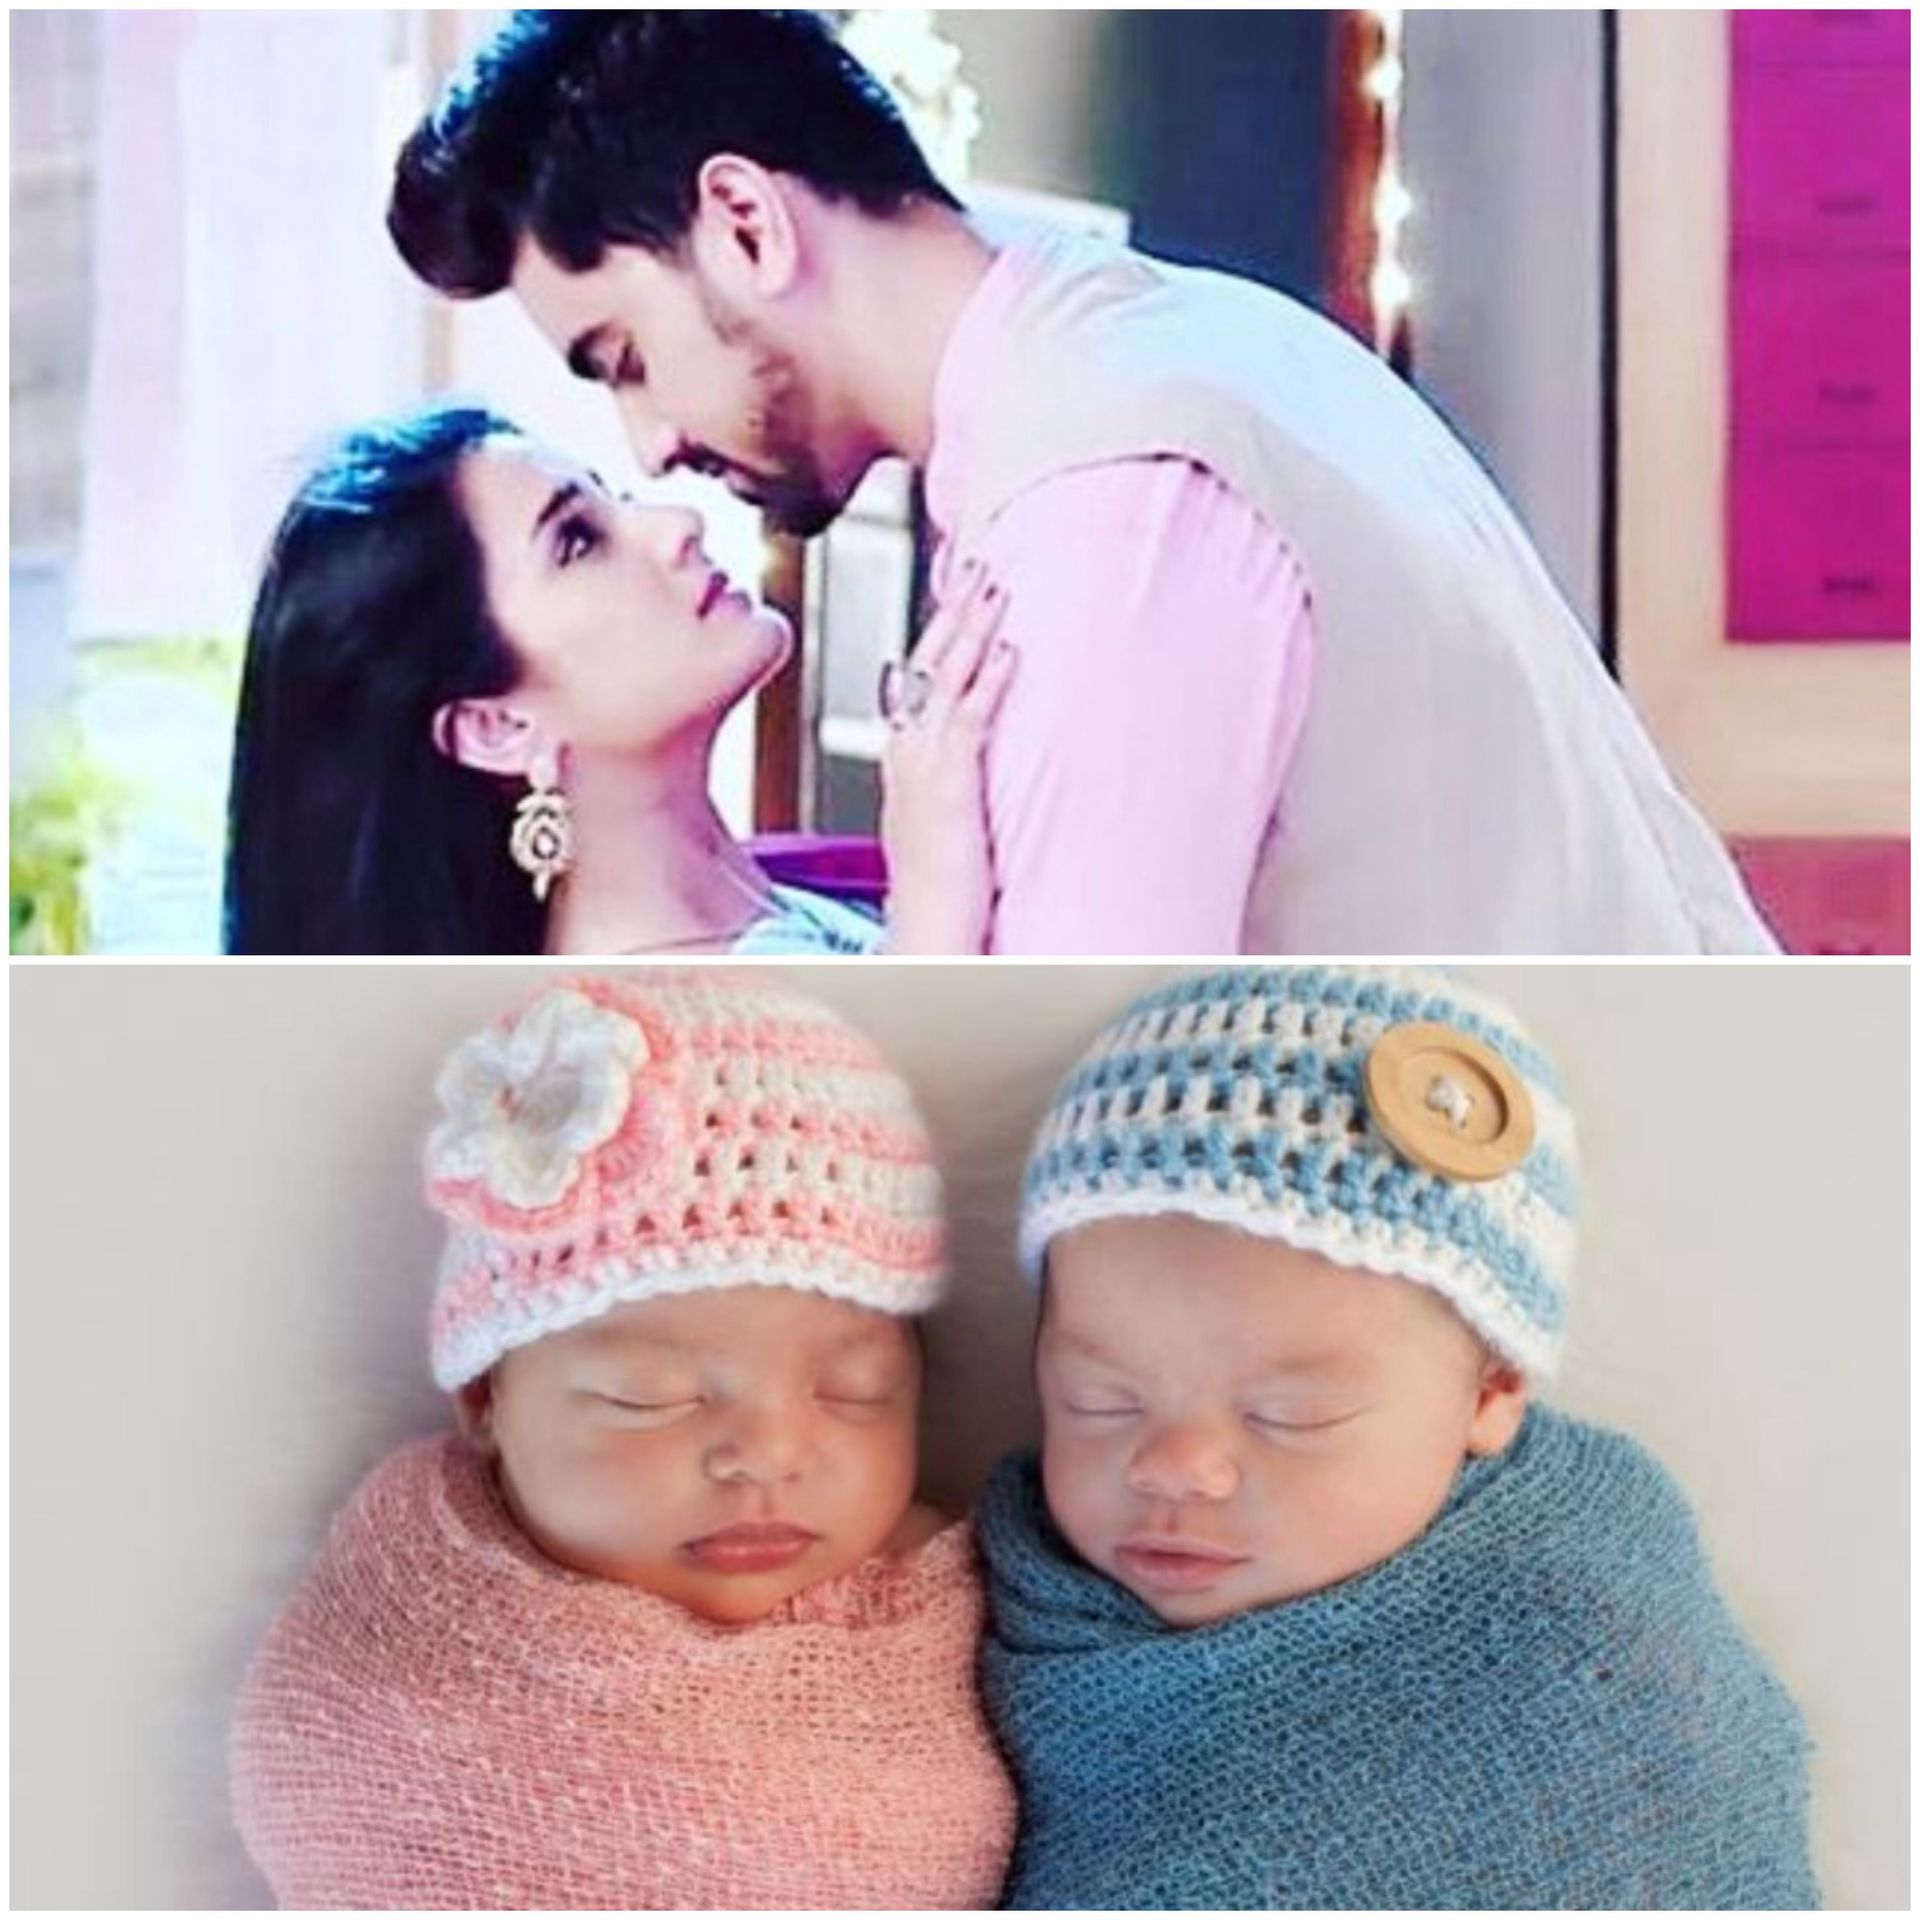 Avneil - being with you - Cute Moments - Wattpad